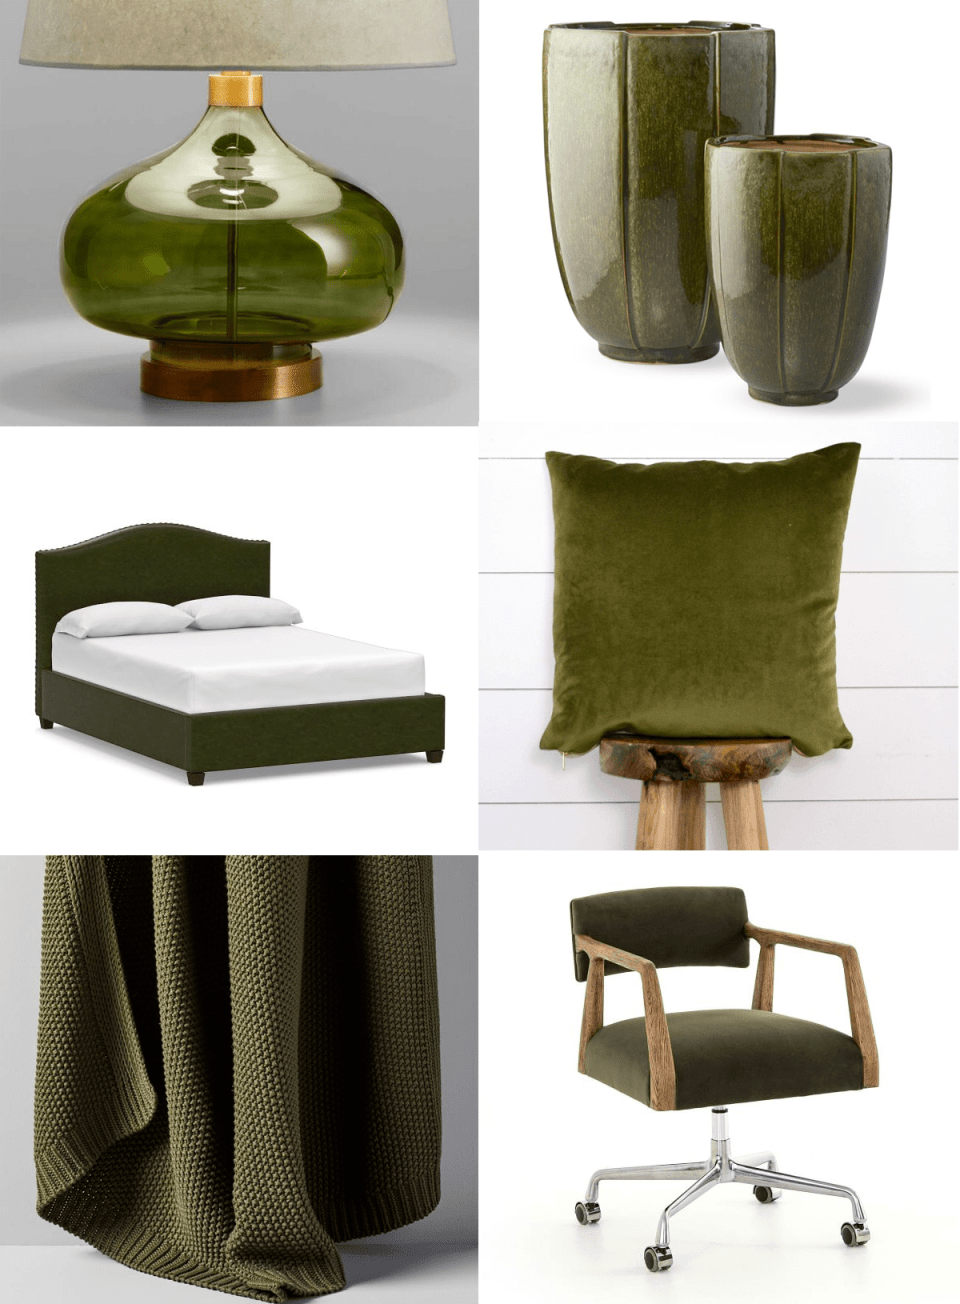 grid showing a green glass lamp, green ceramic vases, a green leather headboard, a green velvet pillow, a green knit throw, and a green velvet office chair